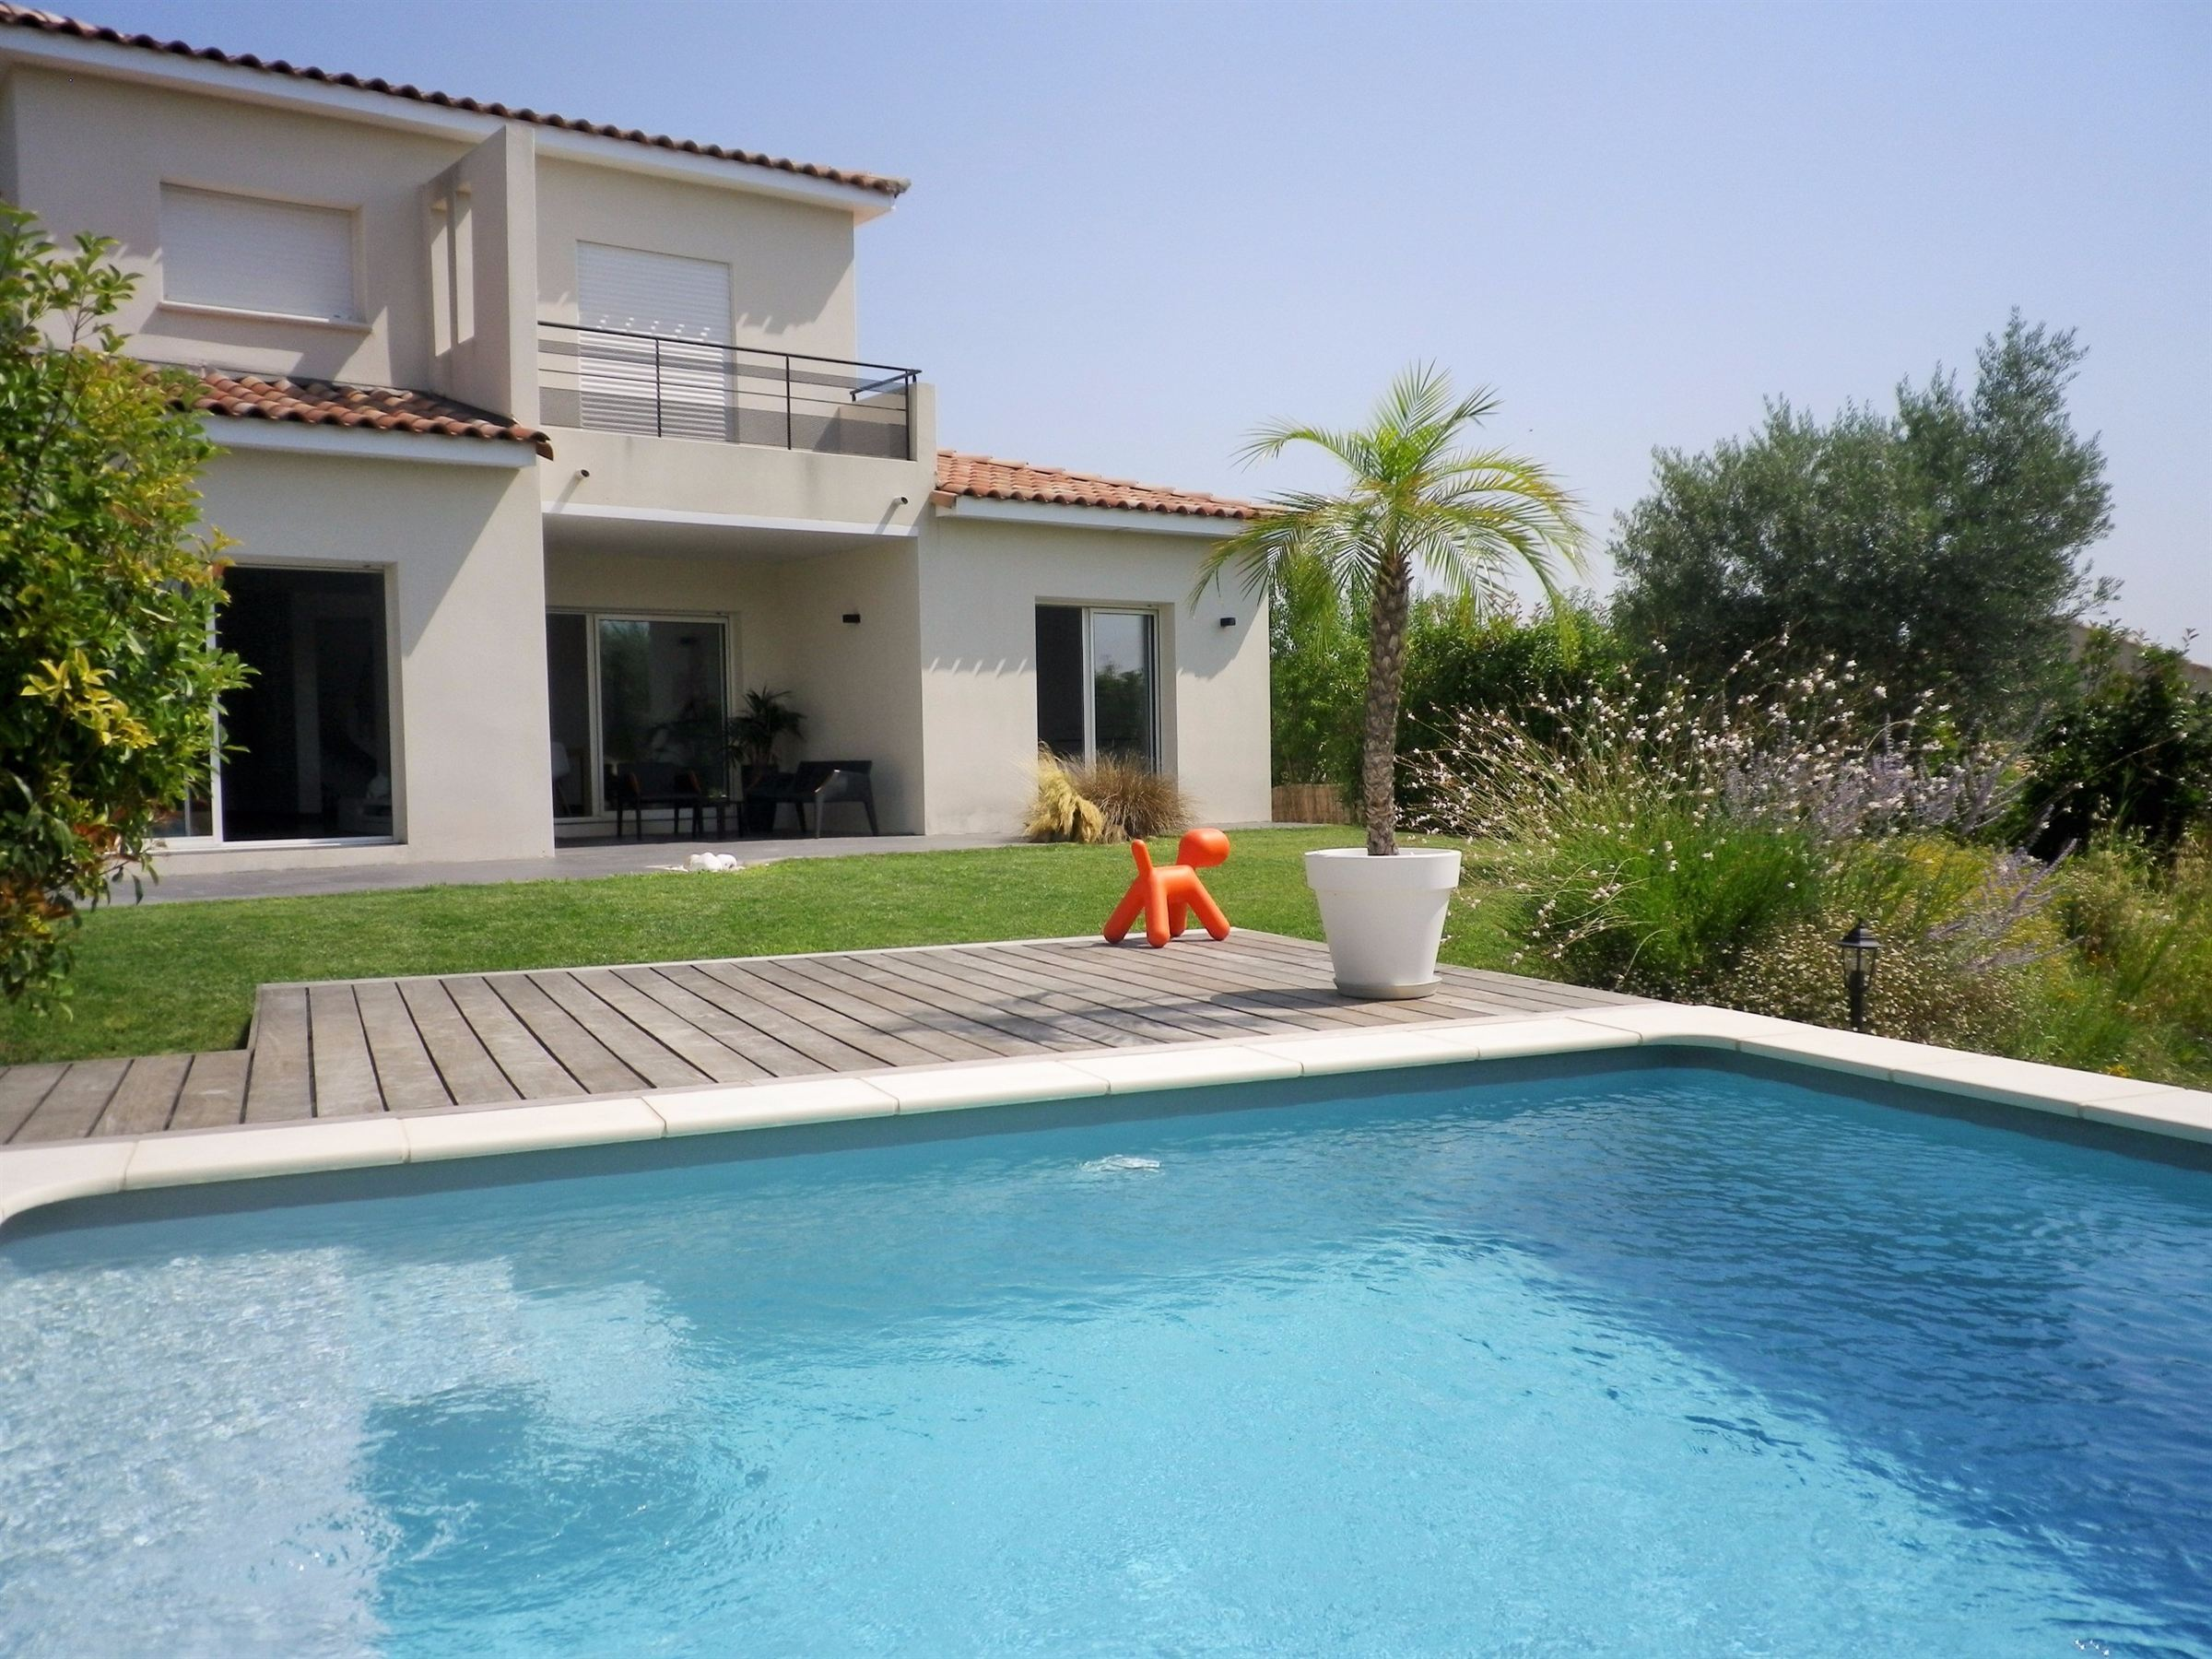 Single Family Home for Sale at House Other Languedoc-Roussillon, Languedoc-Roussillon 30730 France